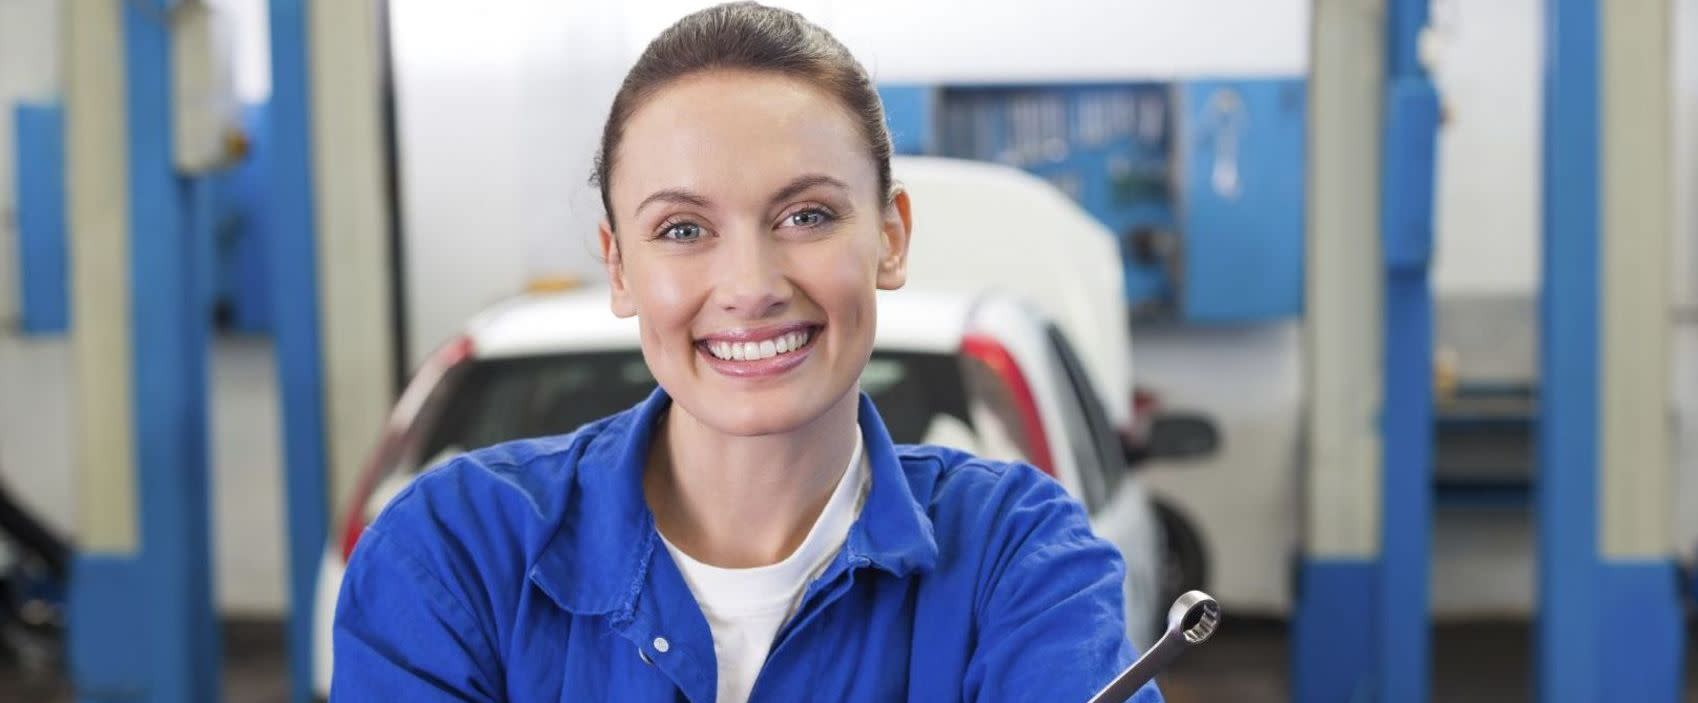 Our Technicians Will Take Care of Your Vehicle!